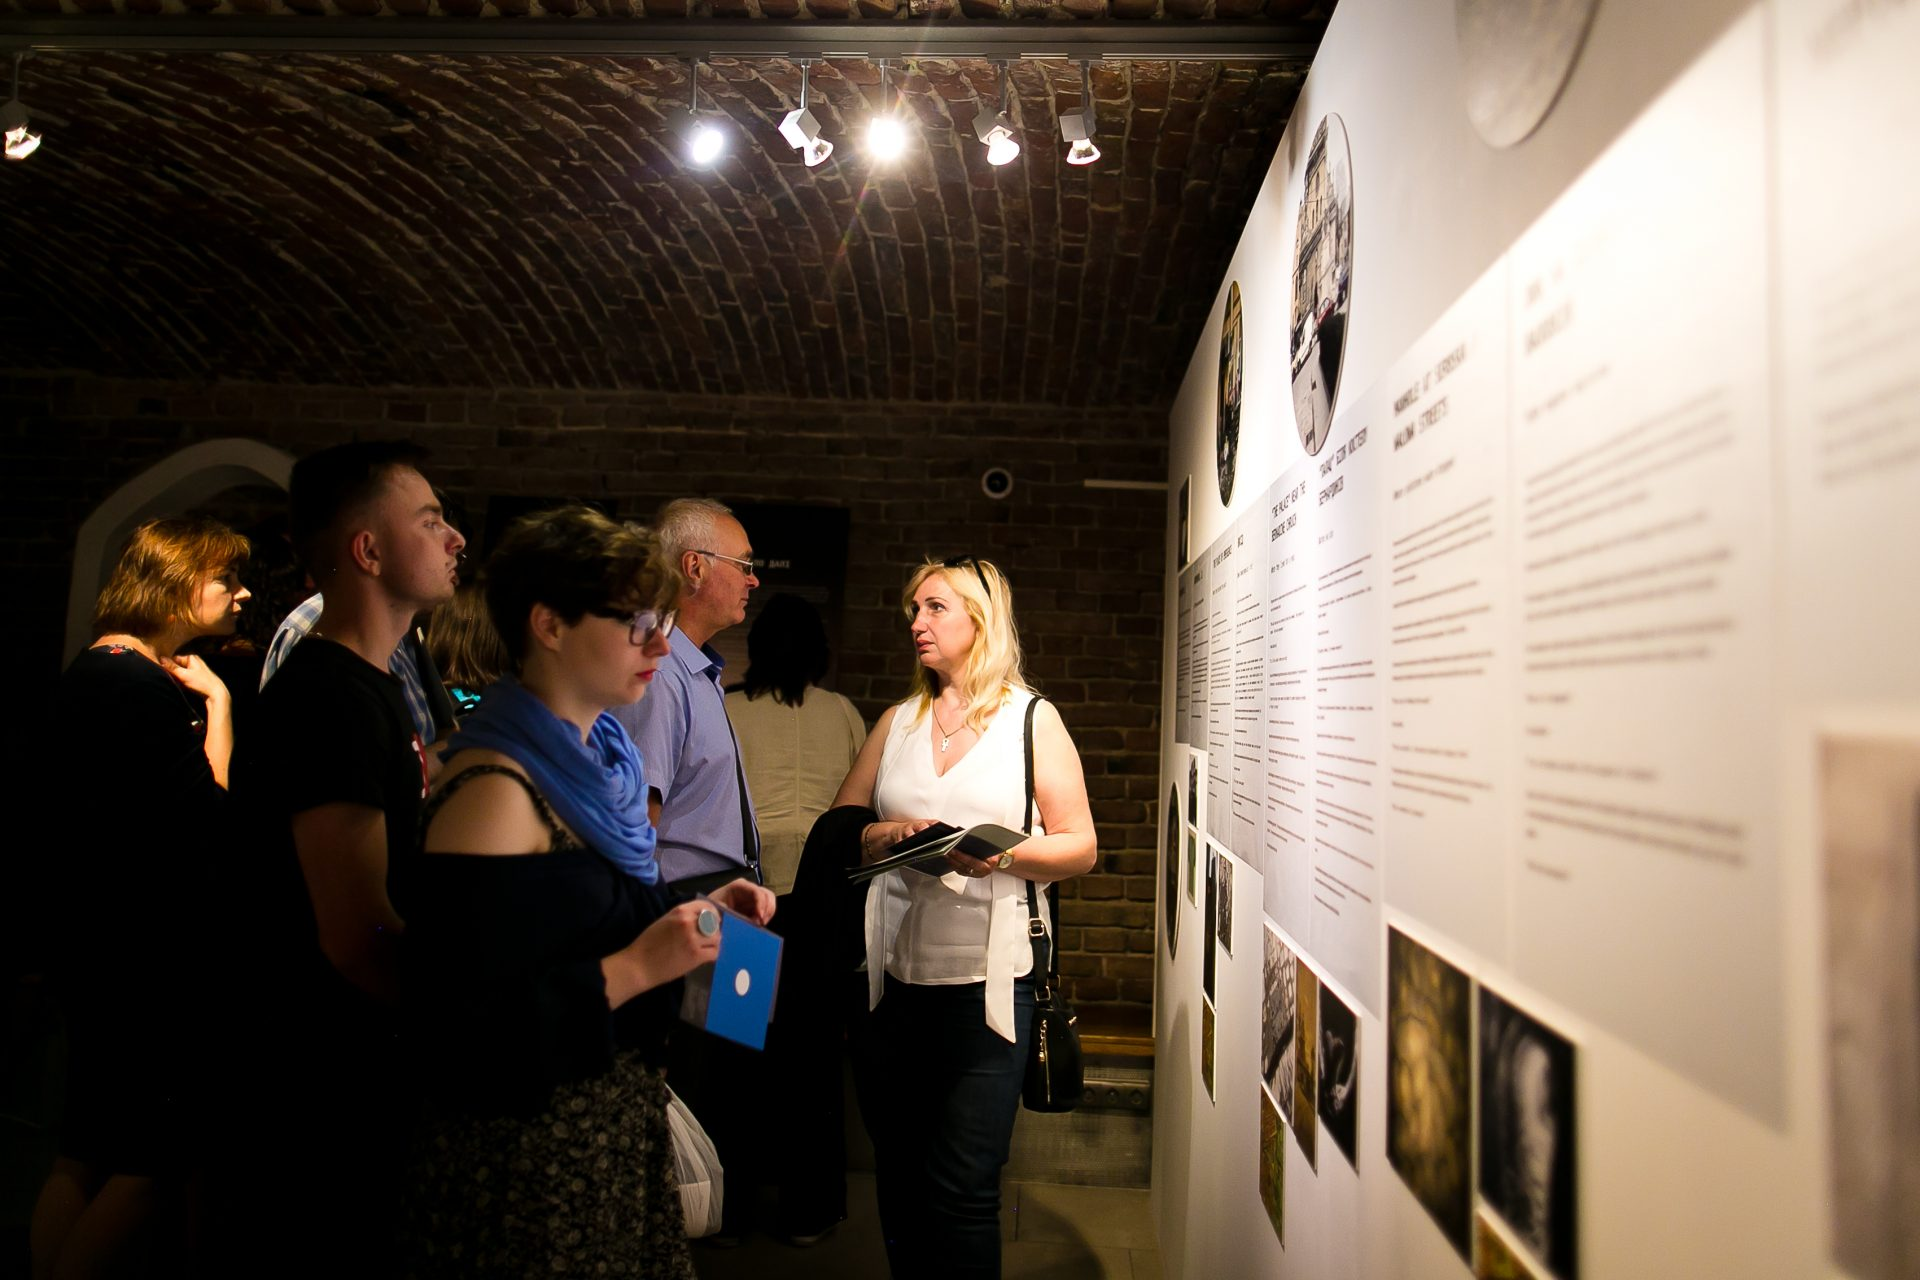 Guided tours along the exhibition